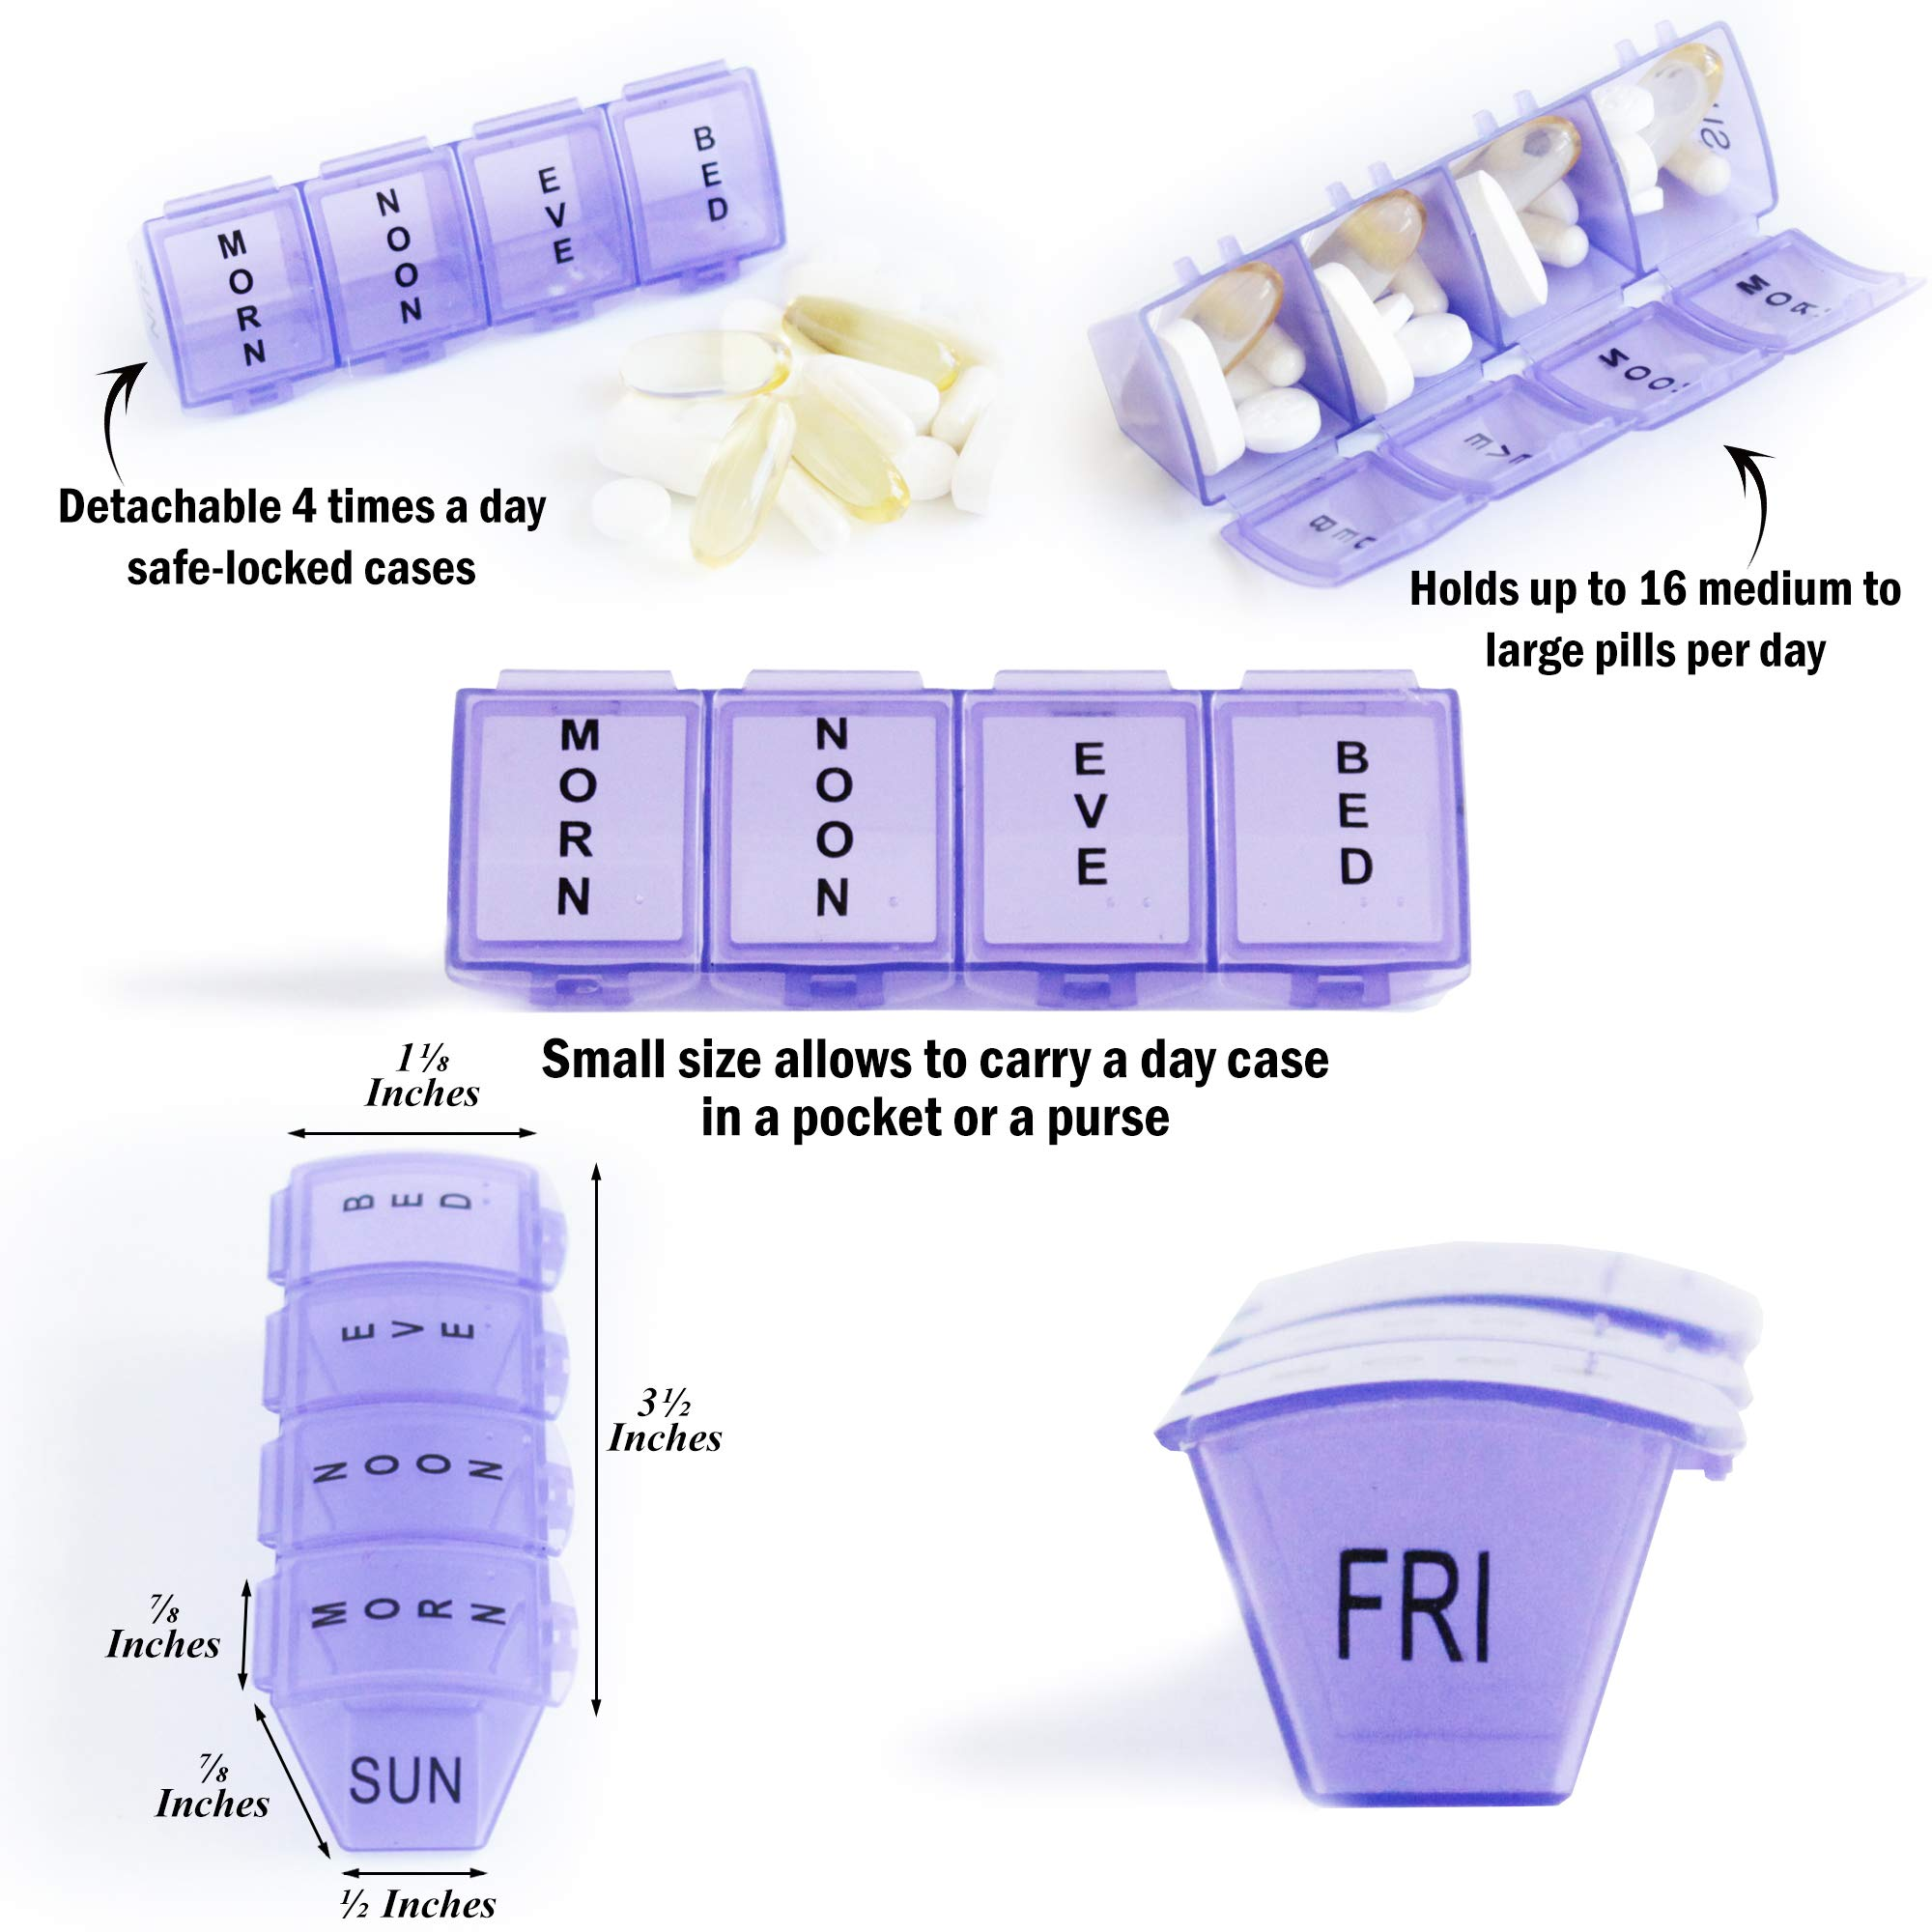 Weekly Pill Organizer, 7day Pill Box For Travel, Time, Space Saving, Daily Medicine Reminder, 7-Day Supplement Container, Holds Up To 16 Pills Per Day, Large Pill Case, Plus Cutter And Keychain Holder